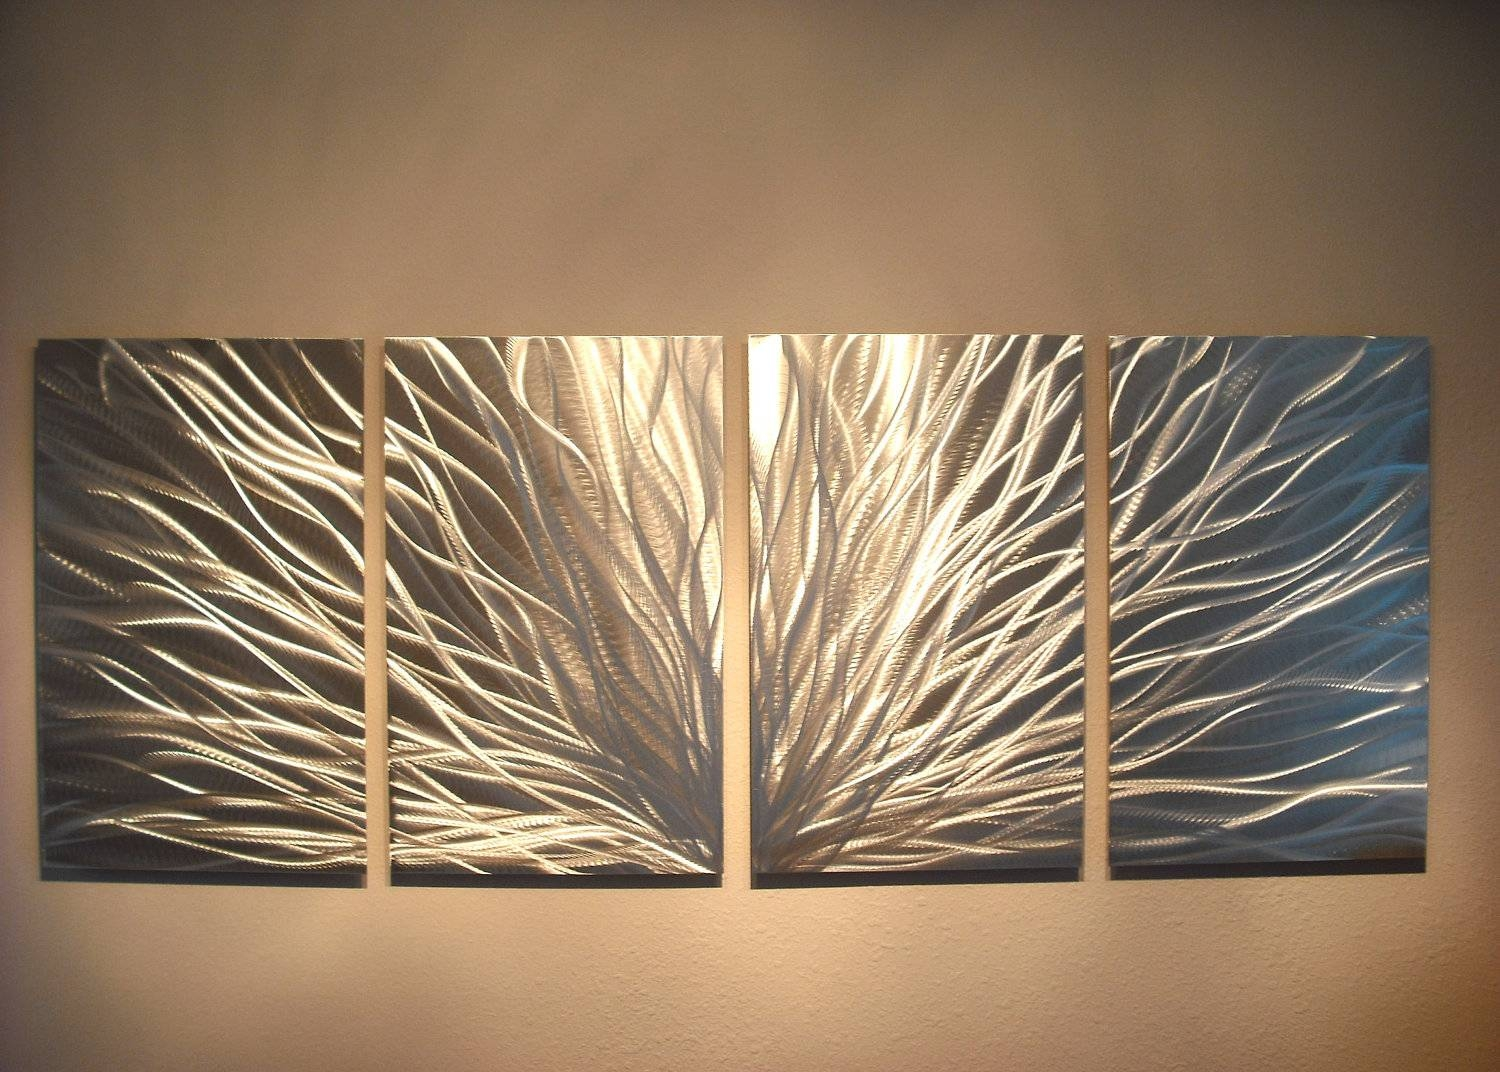 Radiance – Abstract Metal Wall Art Contemporary Modern Decor Regarding Most Up To Date Contemporary Metal Wall Art Decor (Gallery 1 of 20)